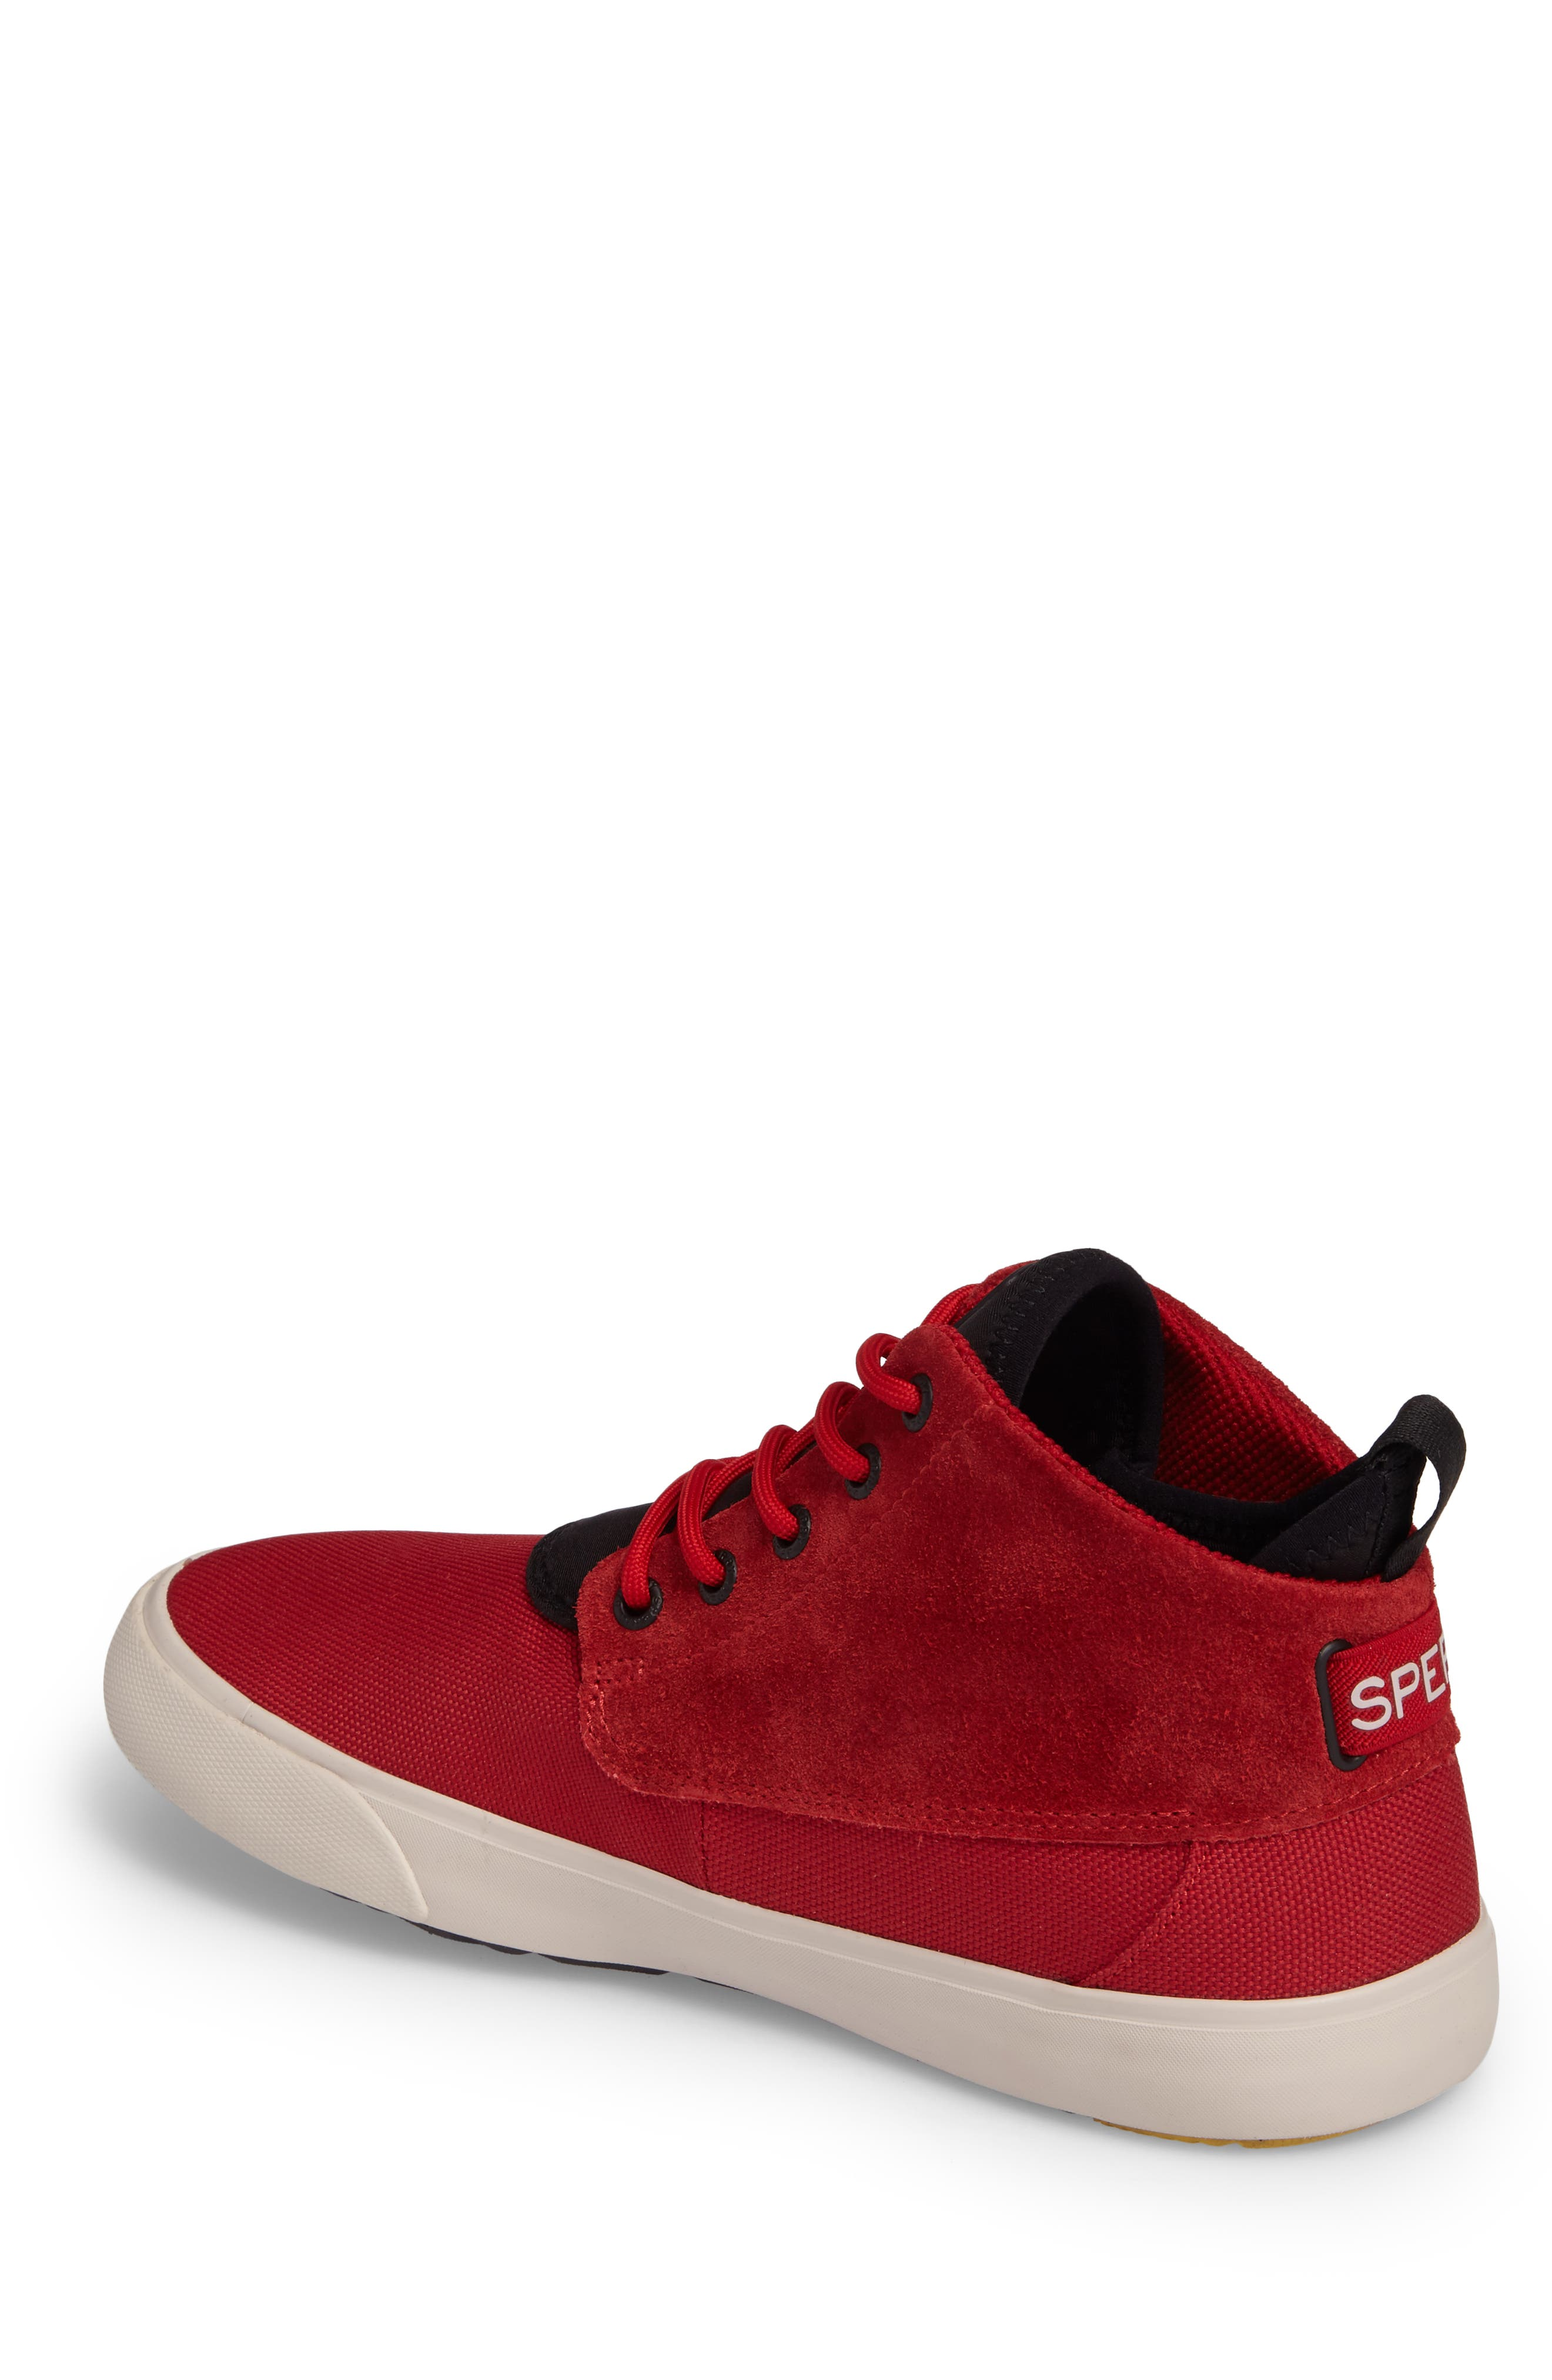 Cutwater Sneaker,                             Alternate thumbnail 2, color,                             RED